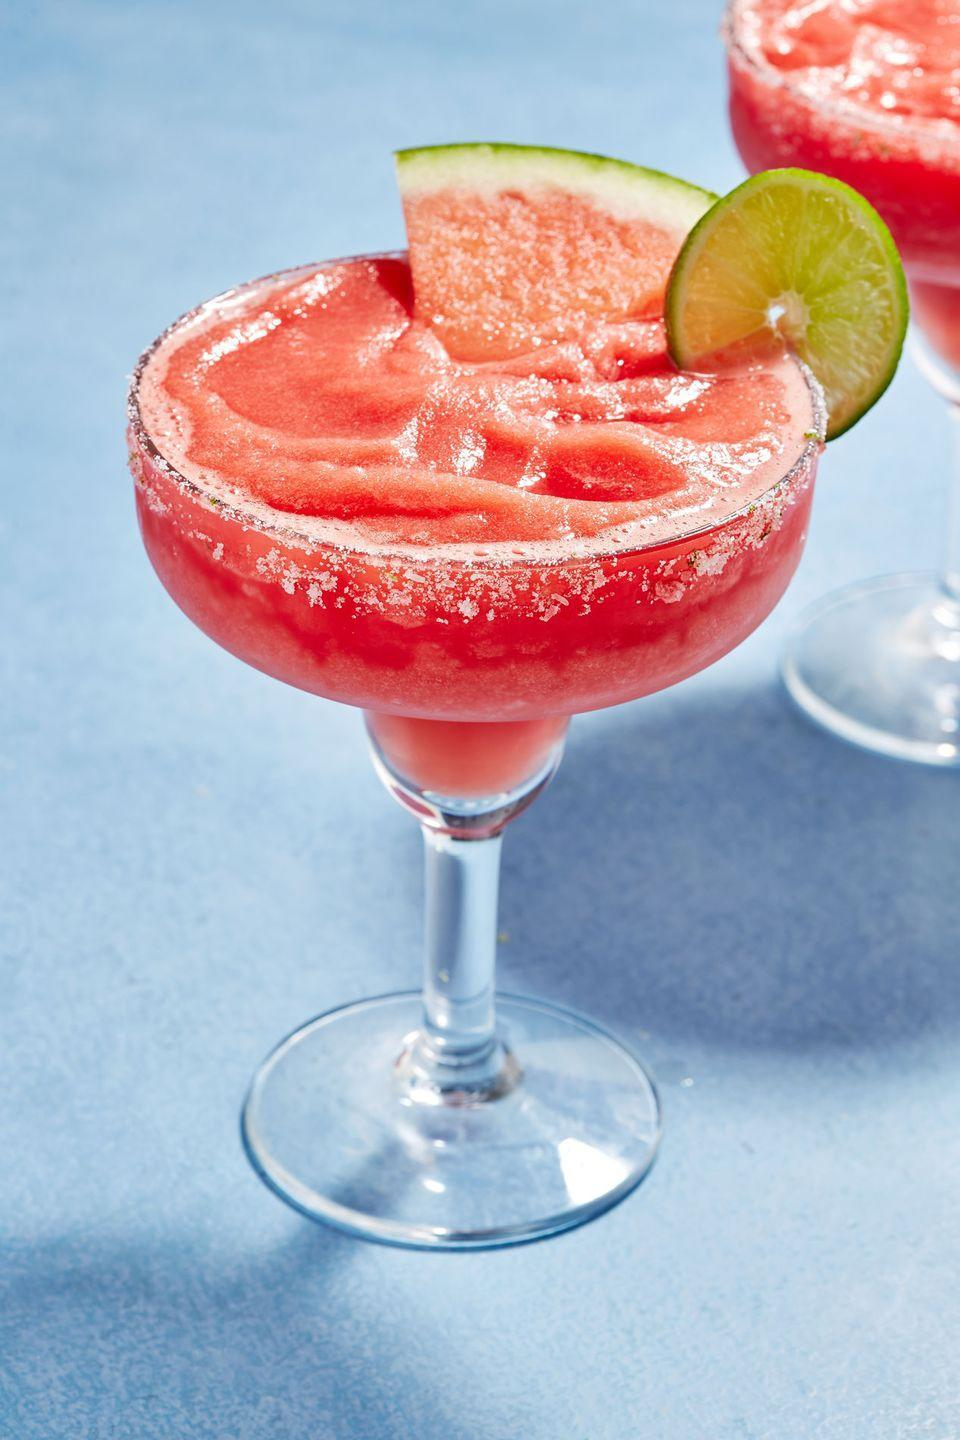 """<p>Pro tip: throw the watermelon in the freezer the night before you make these!</p><p>Get the recipe from <a href=""""https://www.delish.com/cooking/recipe-ideas/a22604091/frozen-watermelon-margaritas-recipe/"""" rel=""""nofollow noopener"""" target=""""_blank"""" data-ylk=""""slk:Delish"""" class=""""link rapid-noclick-resp"""">Delish</a>.</p>"""